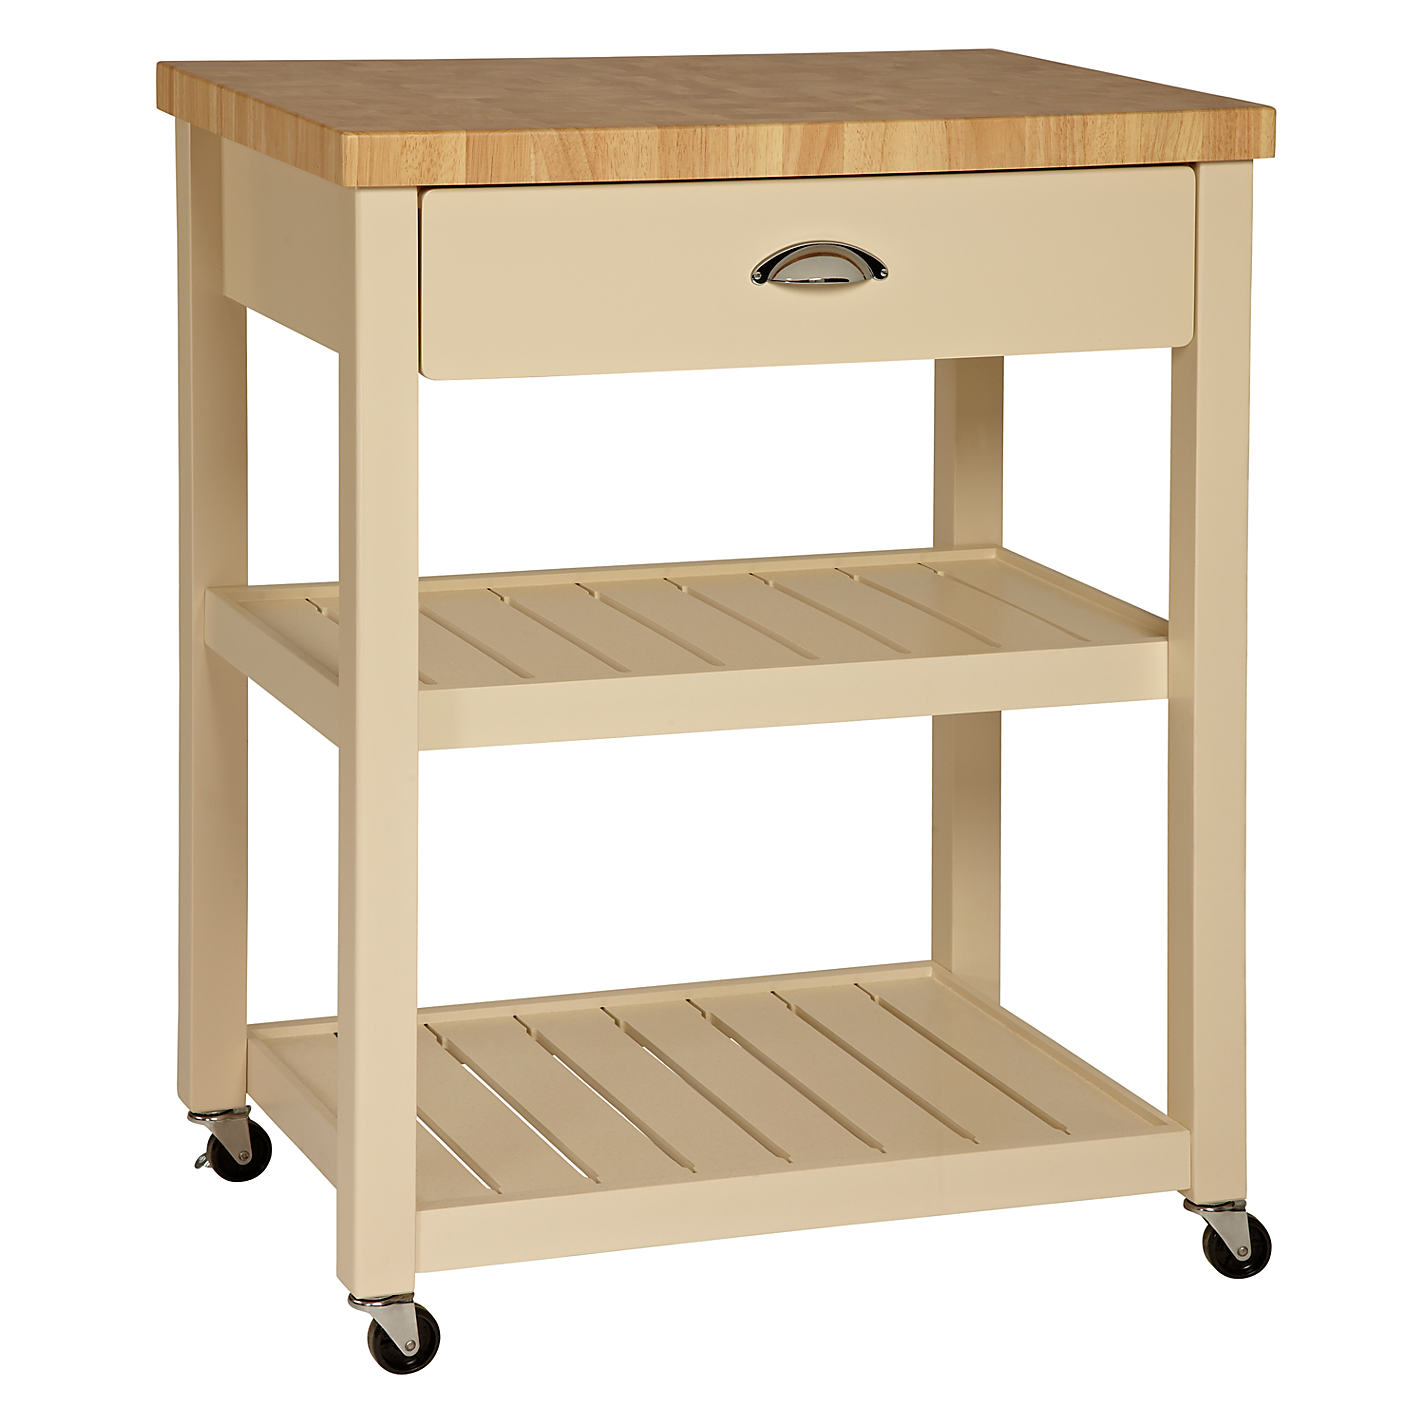 Lewis Kitchen Furniture Buy John Lewis Cotswold Butchers Trolley Cream John Lewis